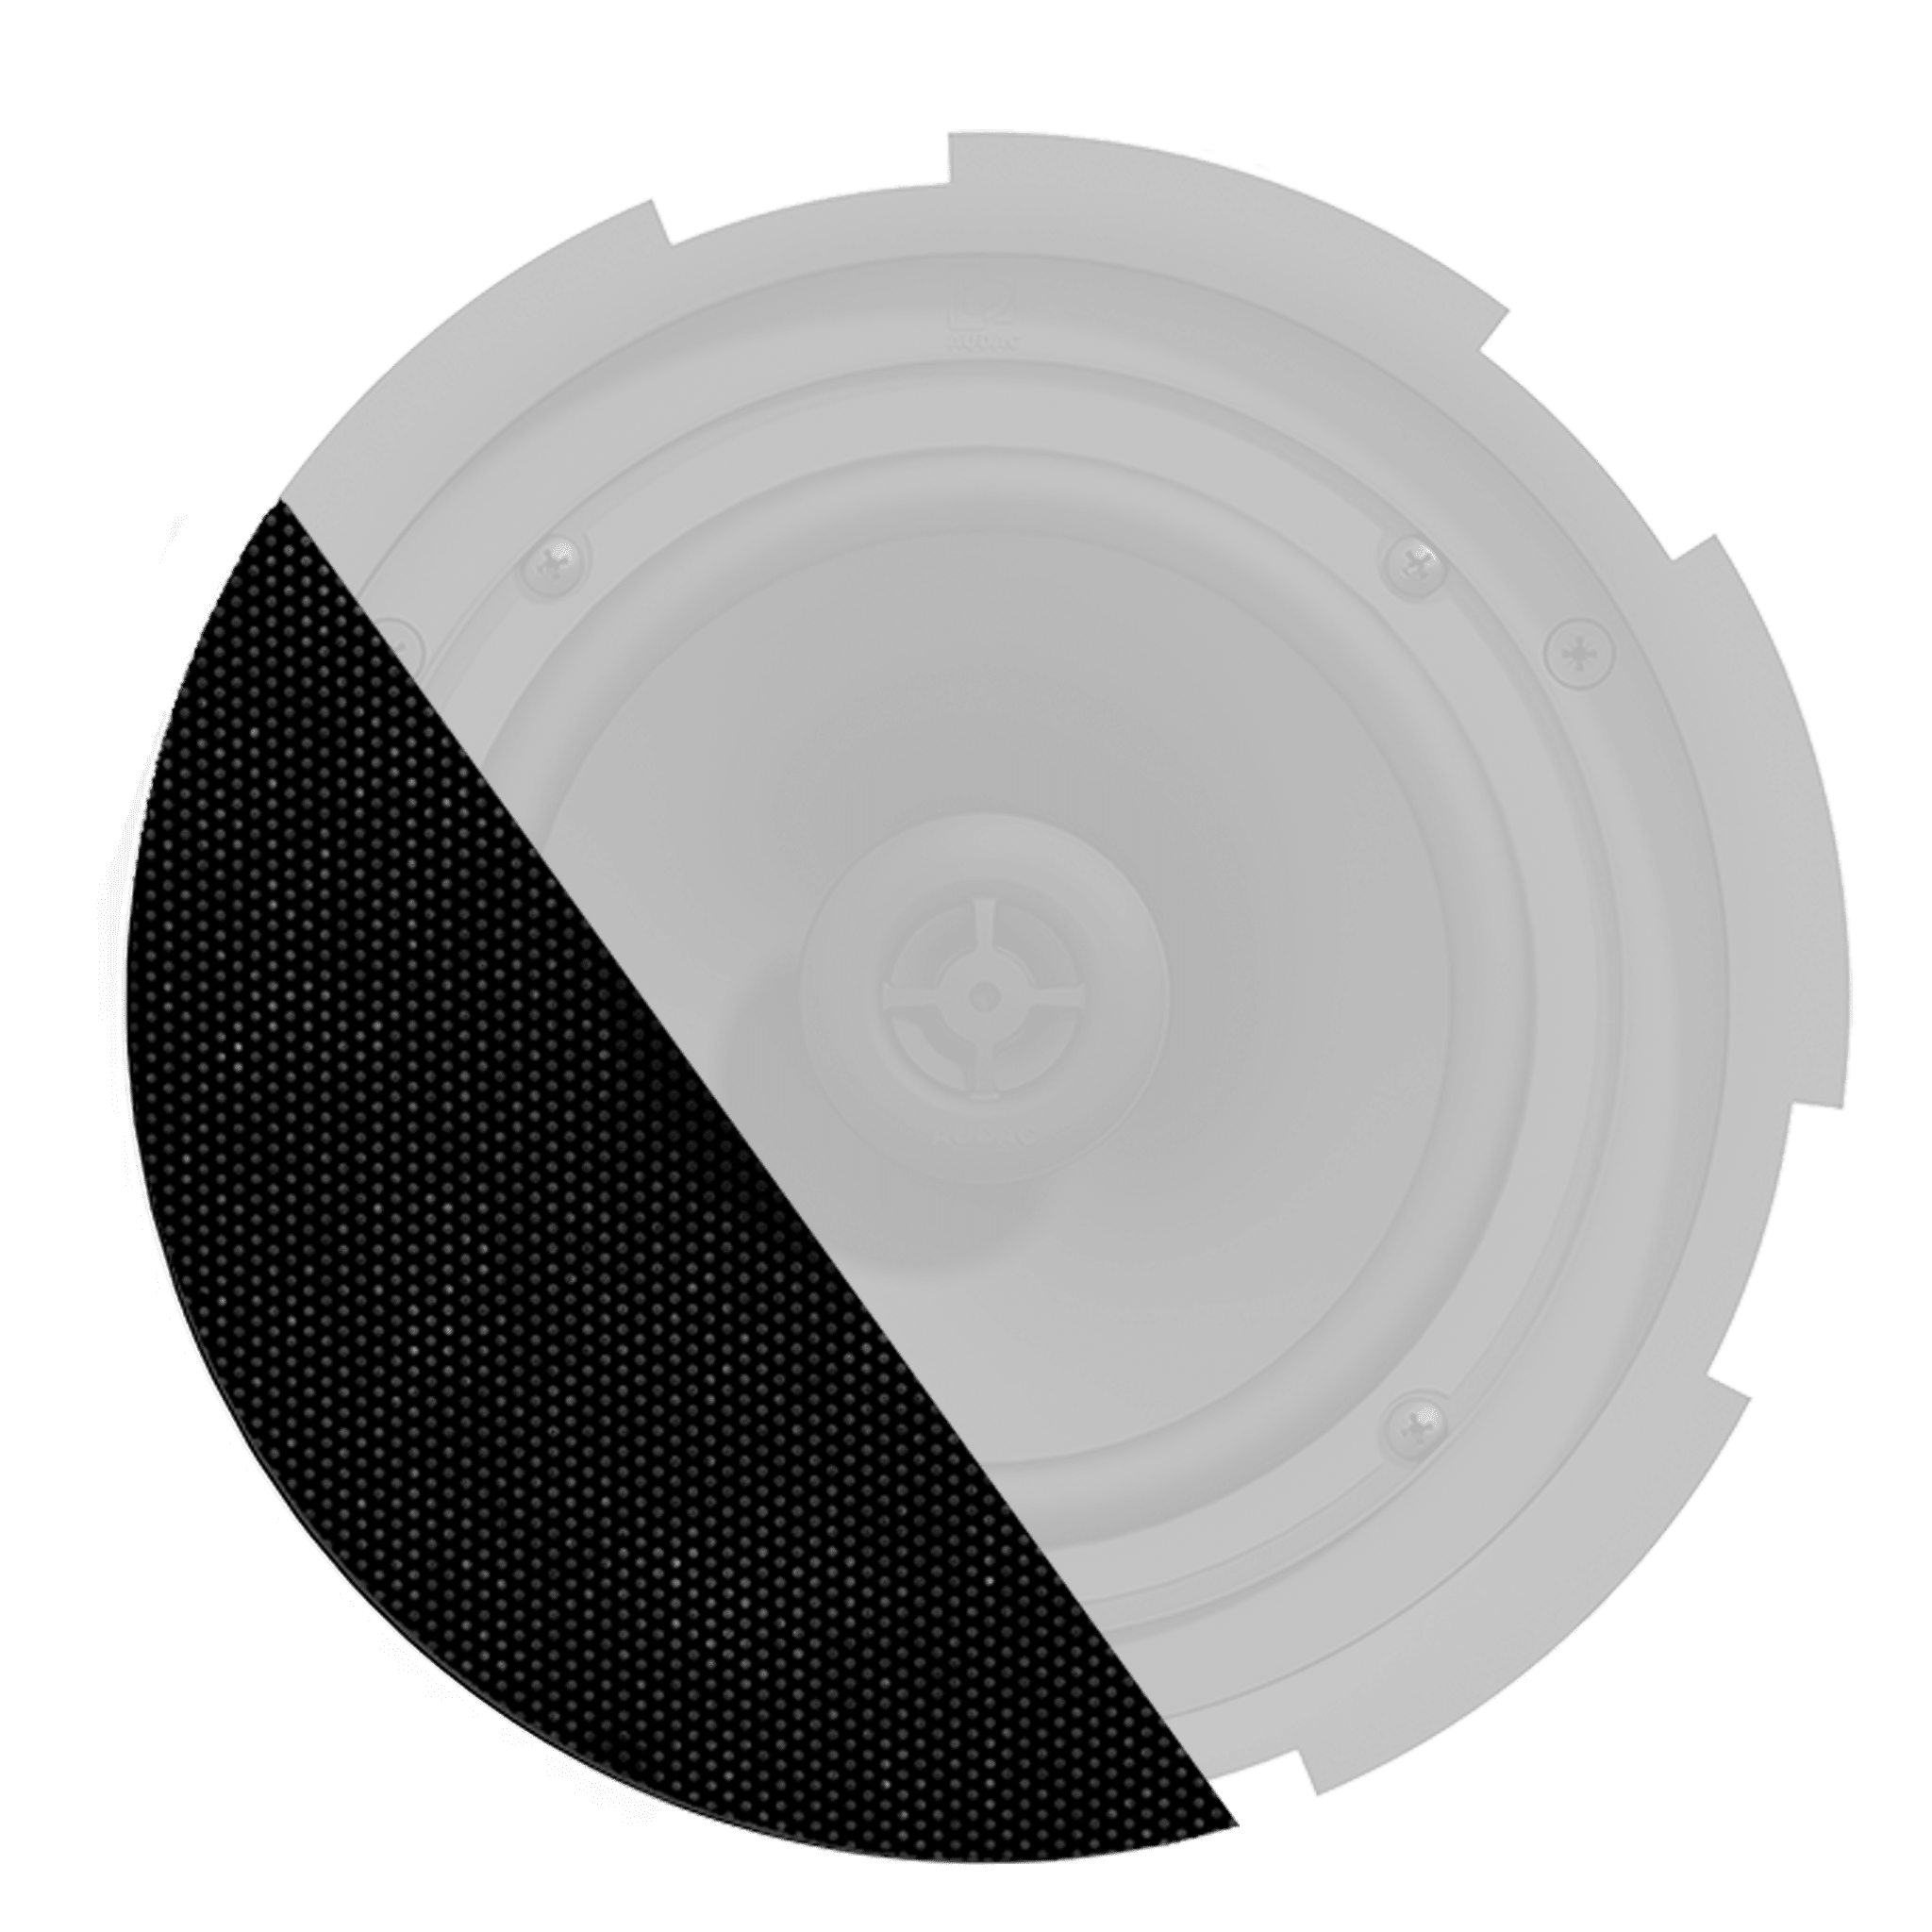 GLI07 - Front grill for CIRA7 series speakers with cloth & outdoor treatment